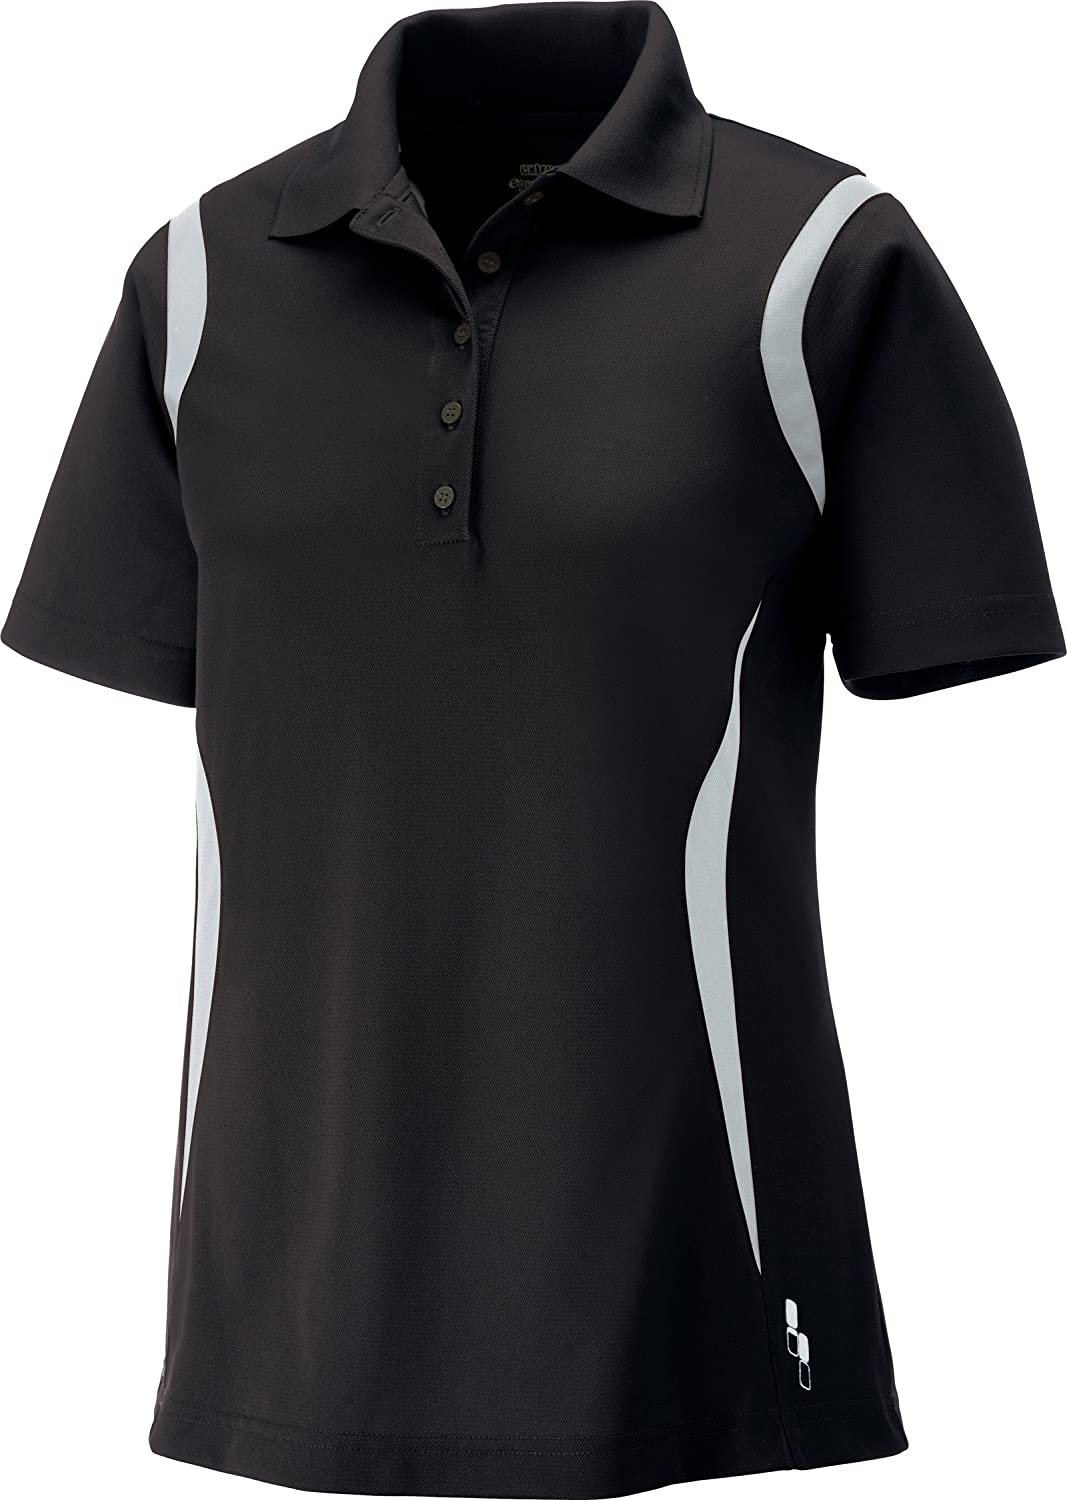 M Ash City Extreme Polos Snag Protection Plus Color-Block Polos -Classic NA 85113